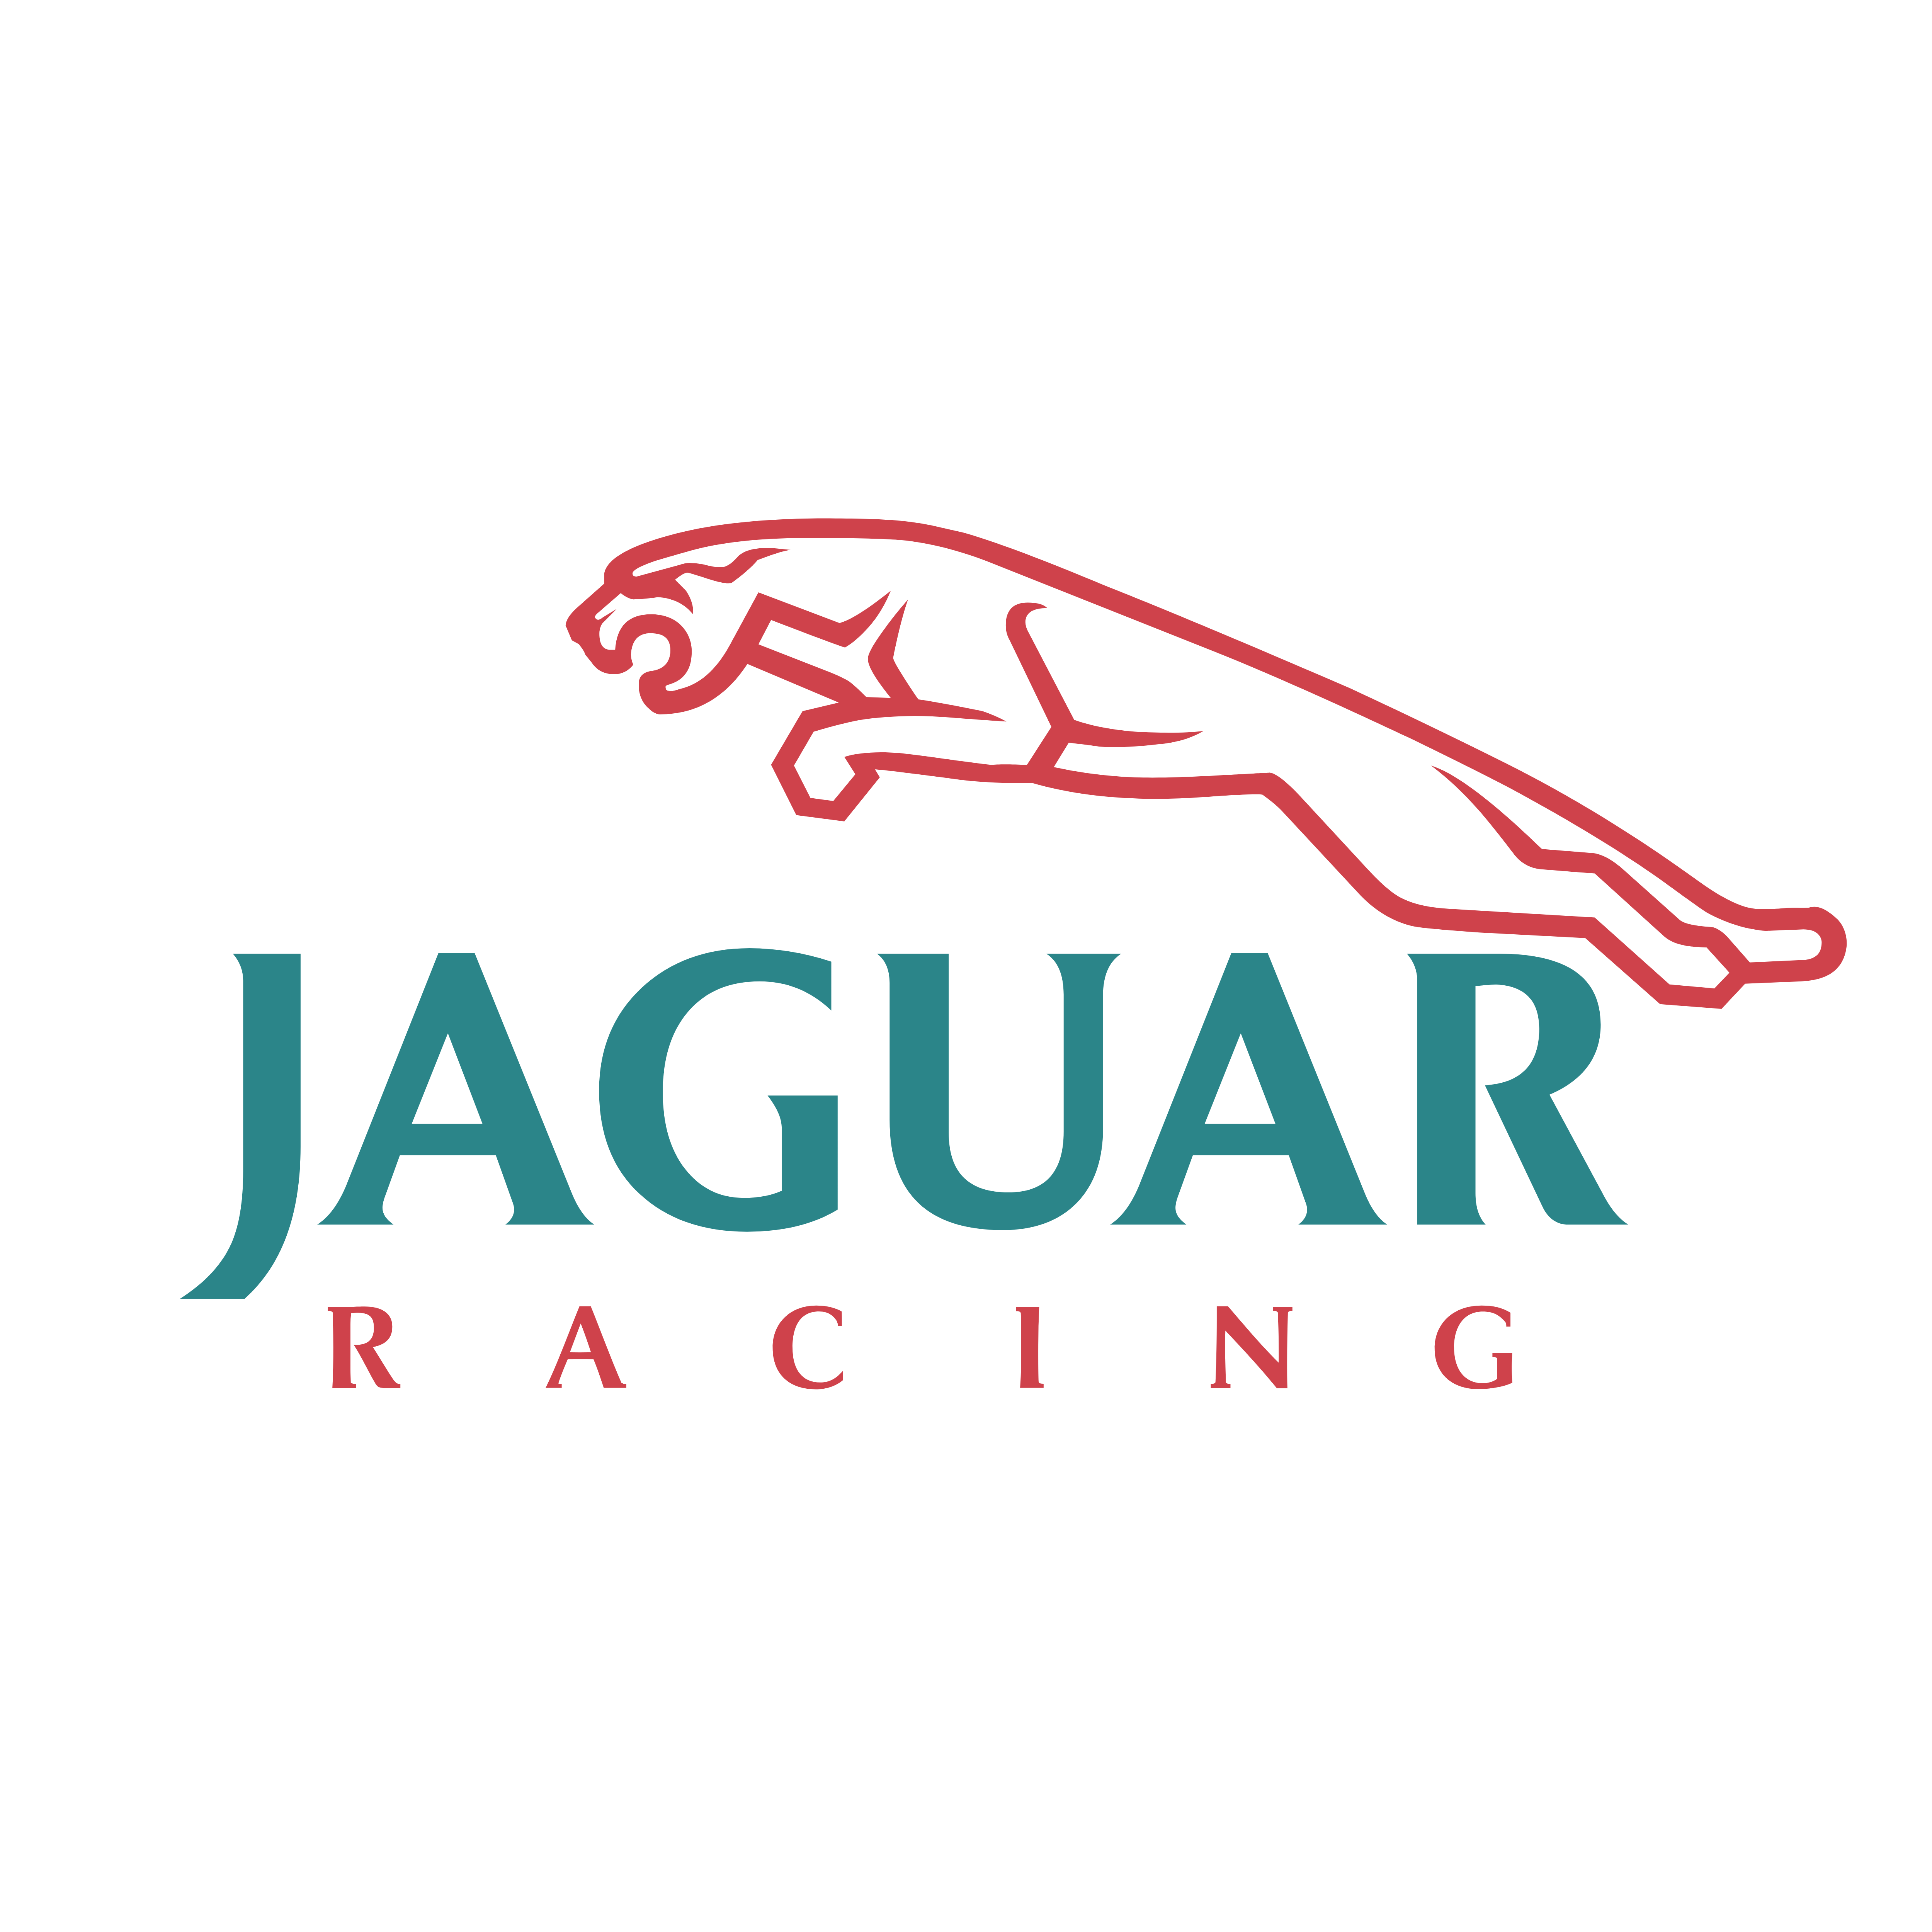 Jaguar Logos Download